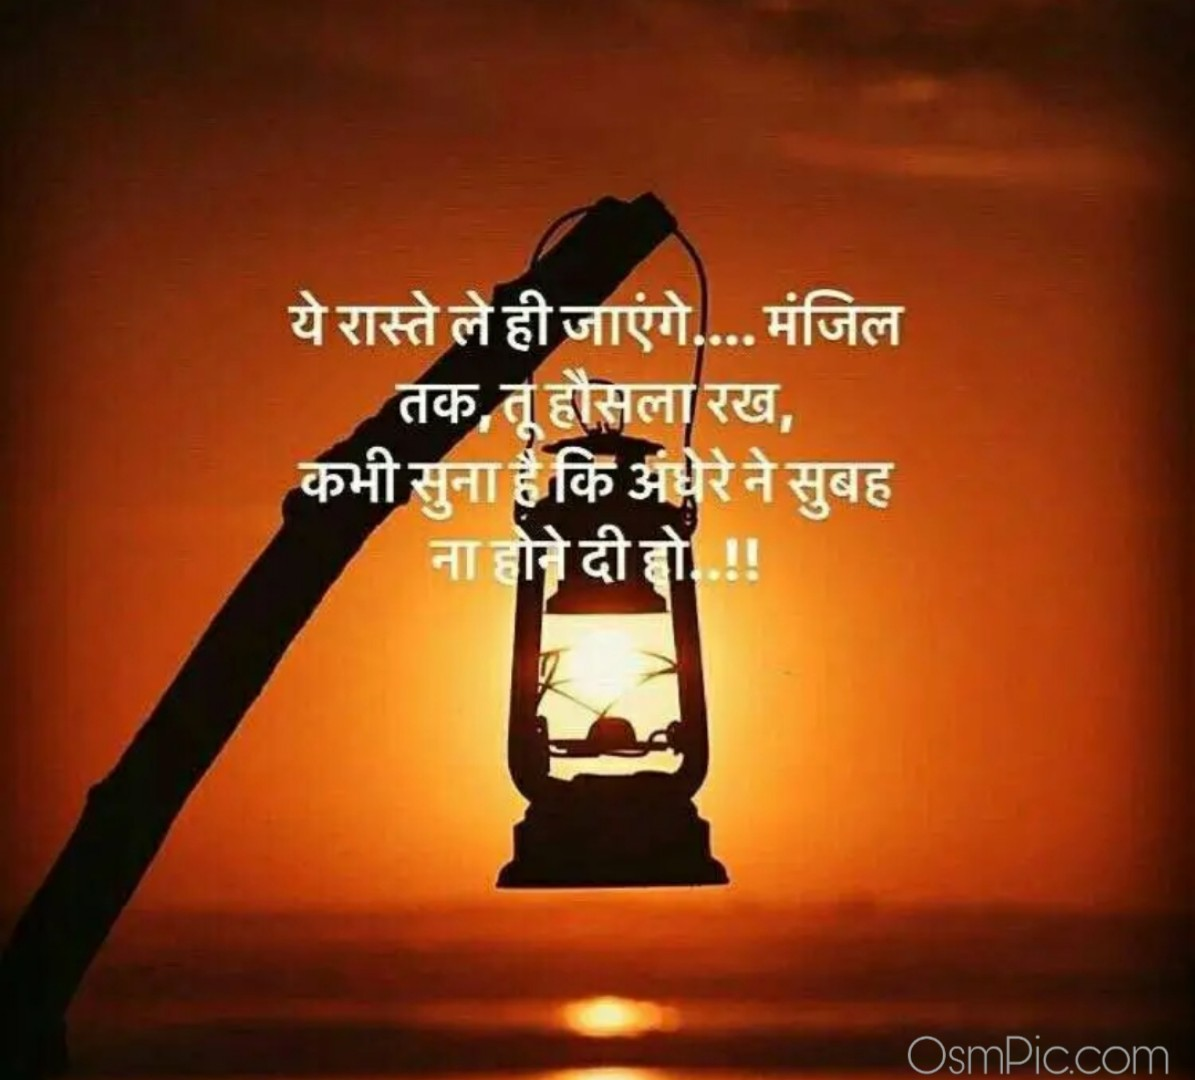 Top 20 Hindi Motivational Thoughts Pictures Quotes Images For Success